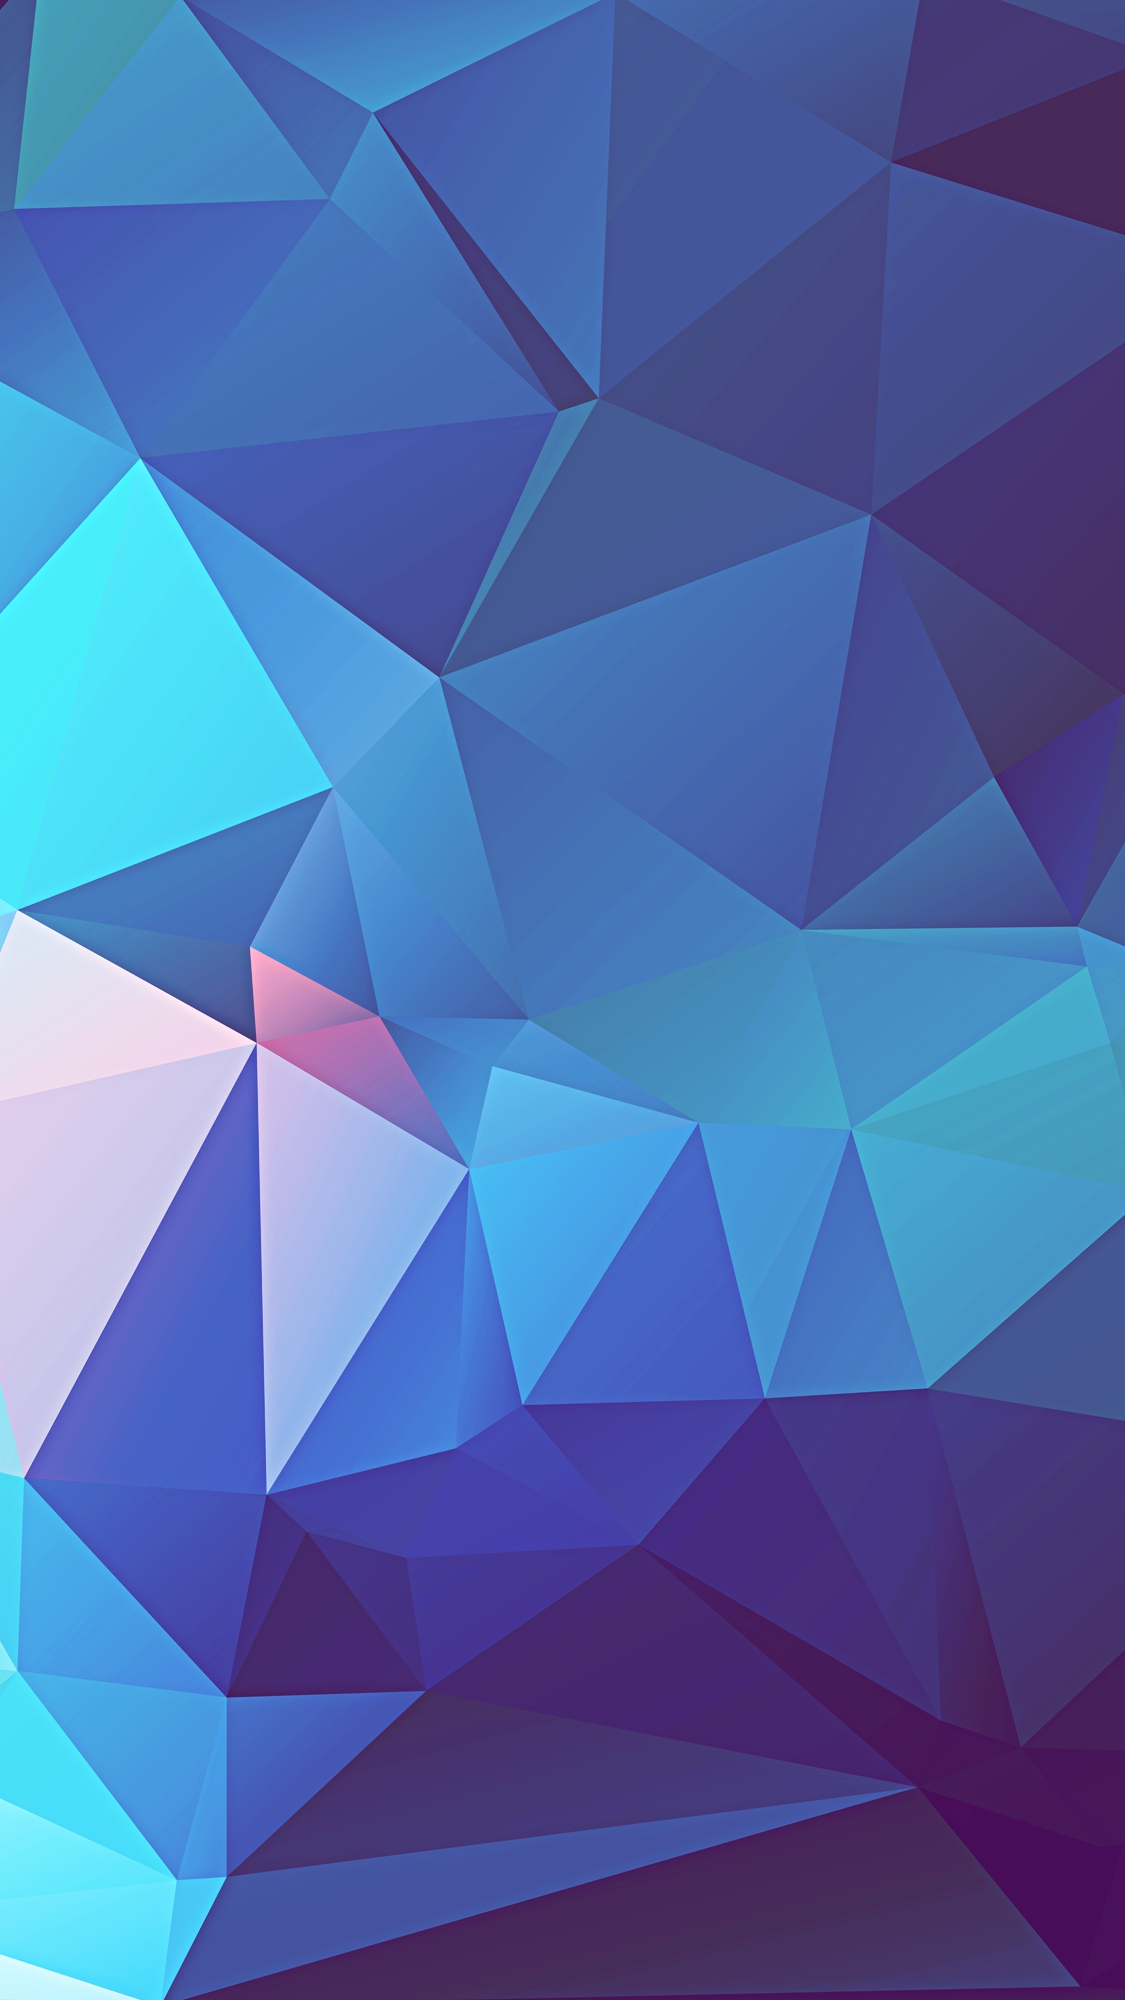 Low poly texture Blue iPhone Wallpaper iphoneswallpapers com